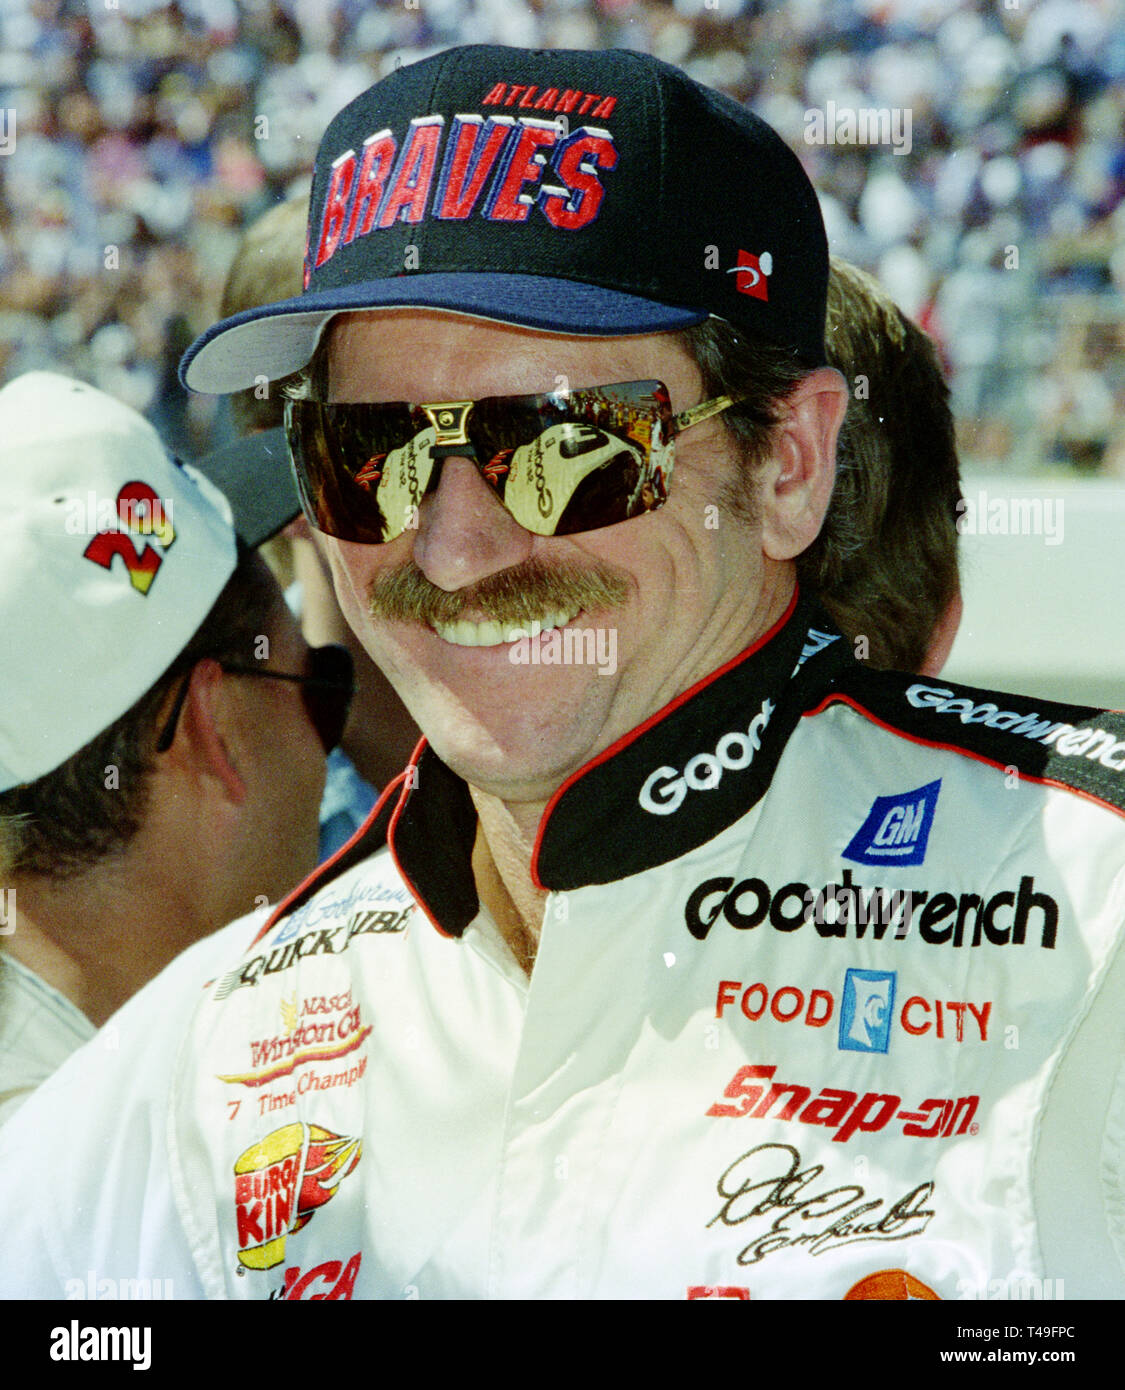 a8c02f9a12d1e Dale Earnhardt on pit road prior to the start of the UAW-GM Quality 500